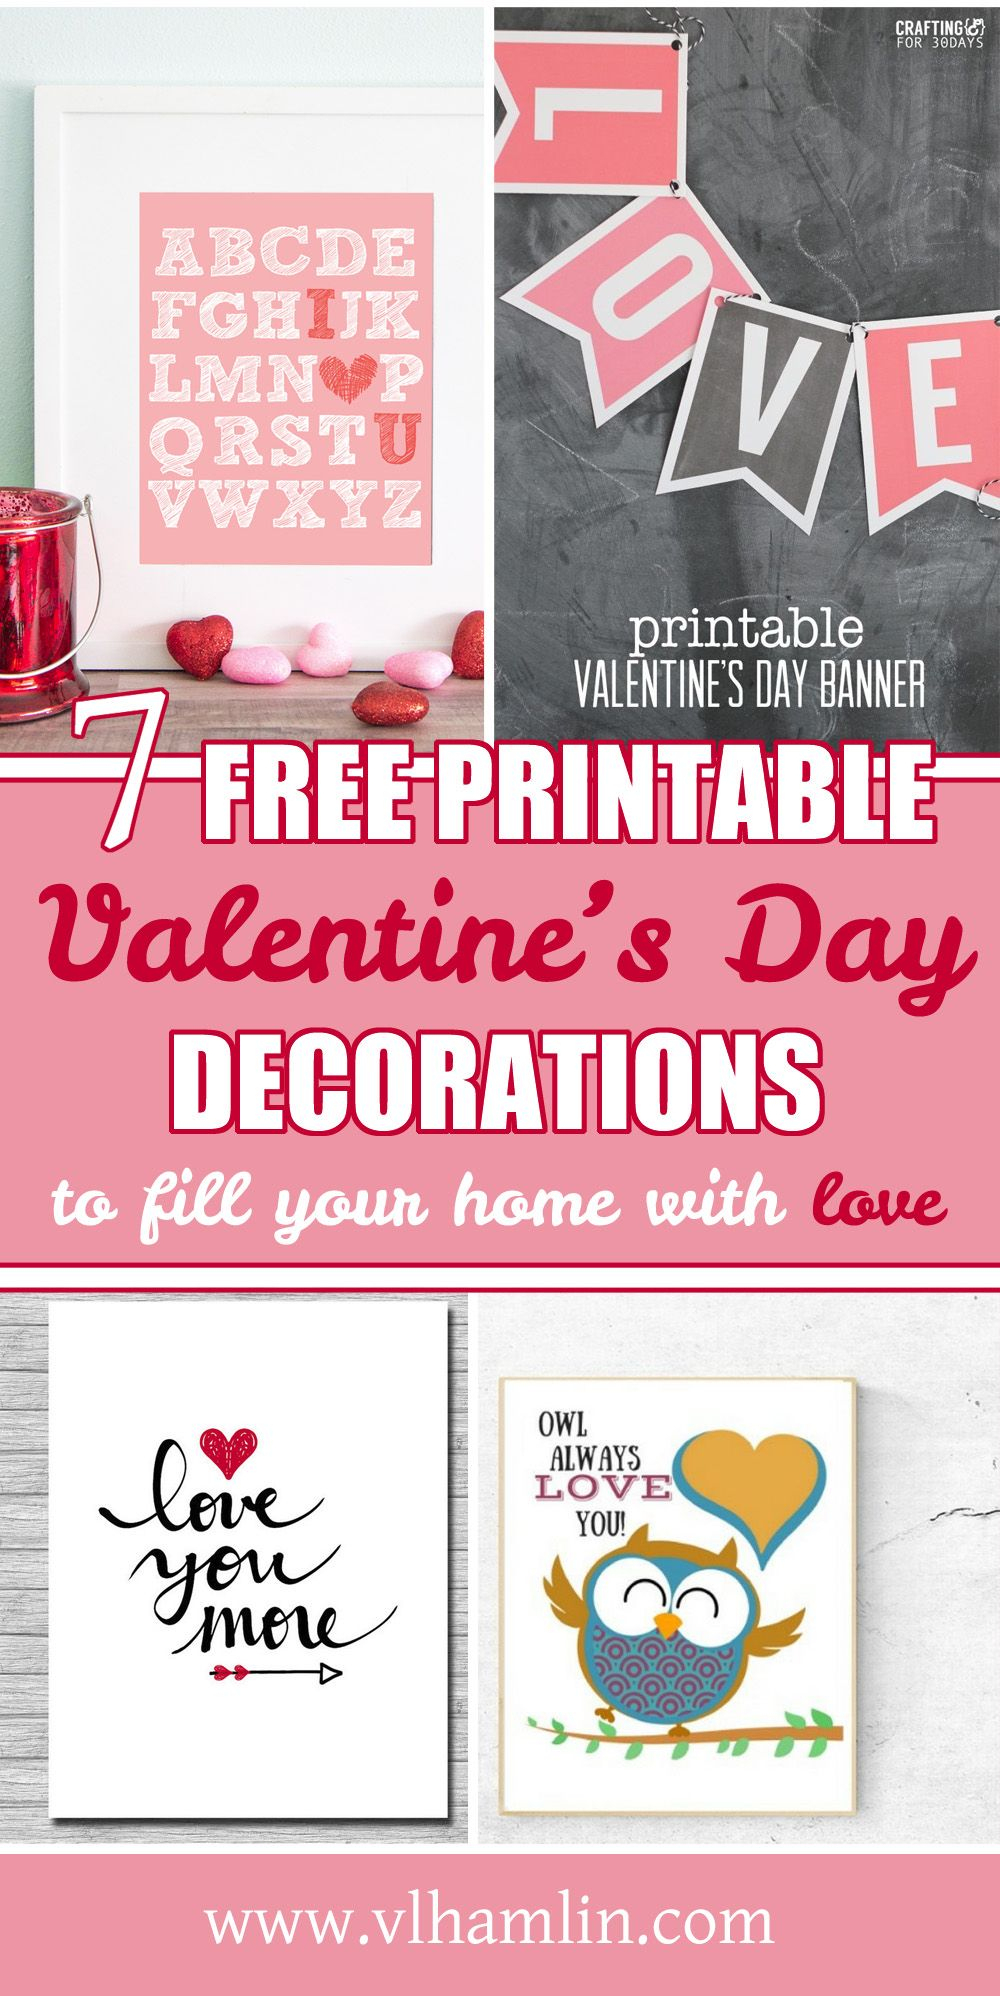 7 Free Printable Valentines Day Decorations To Fill Your Home With - Free Printable Valentine's Day Decorations